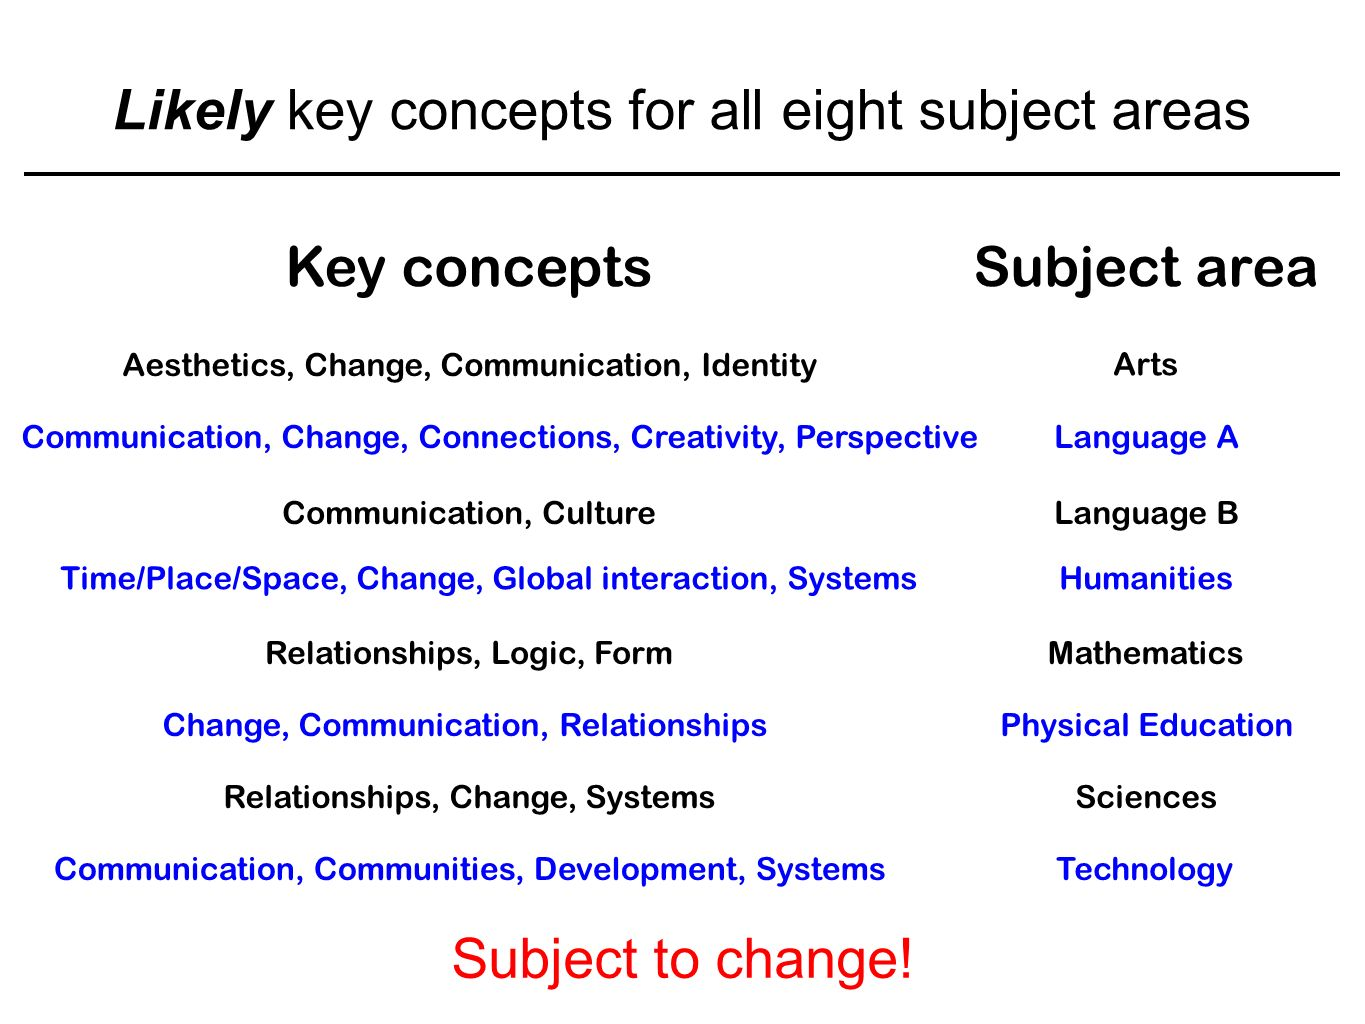 Likely key concepts for all eight subject areas